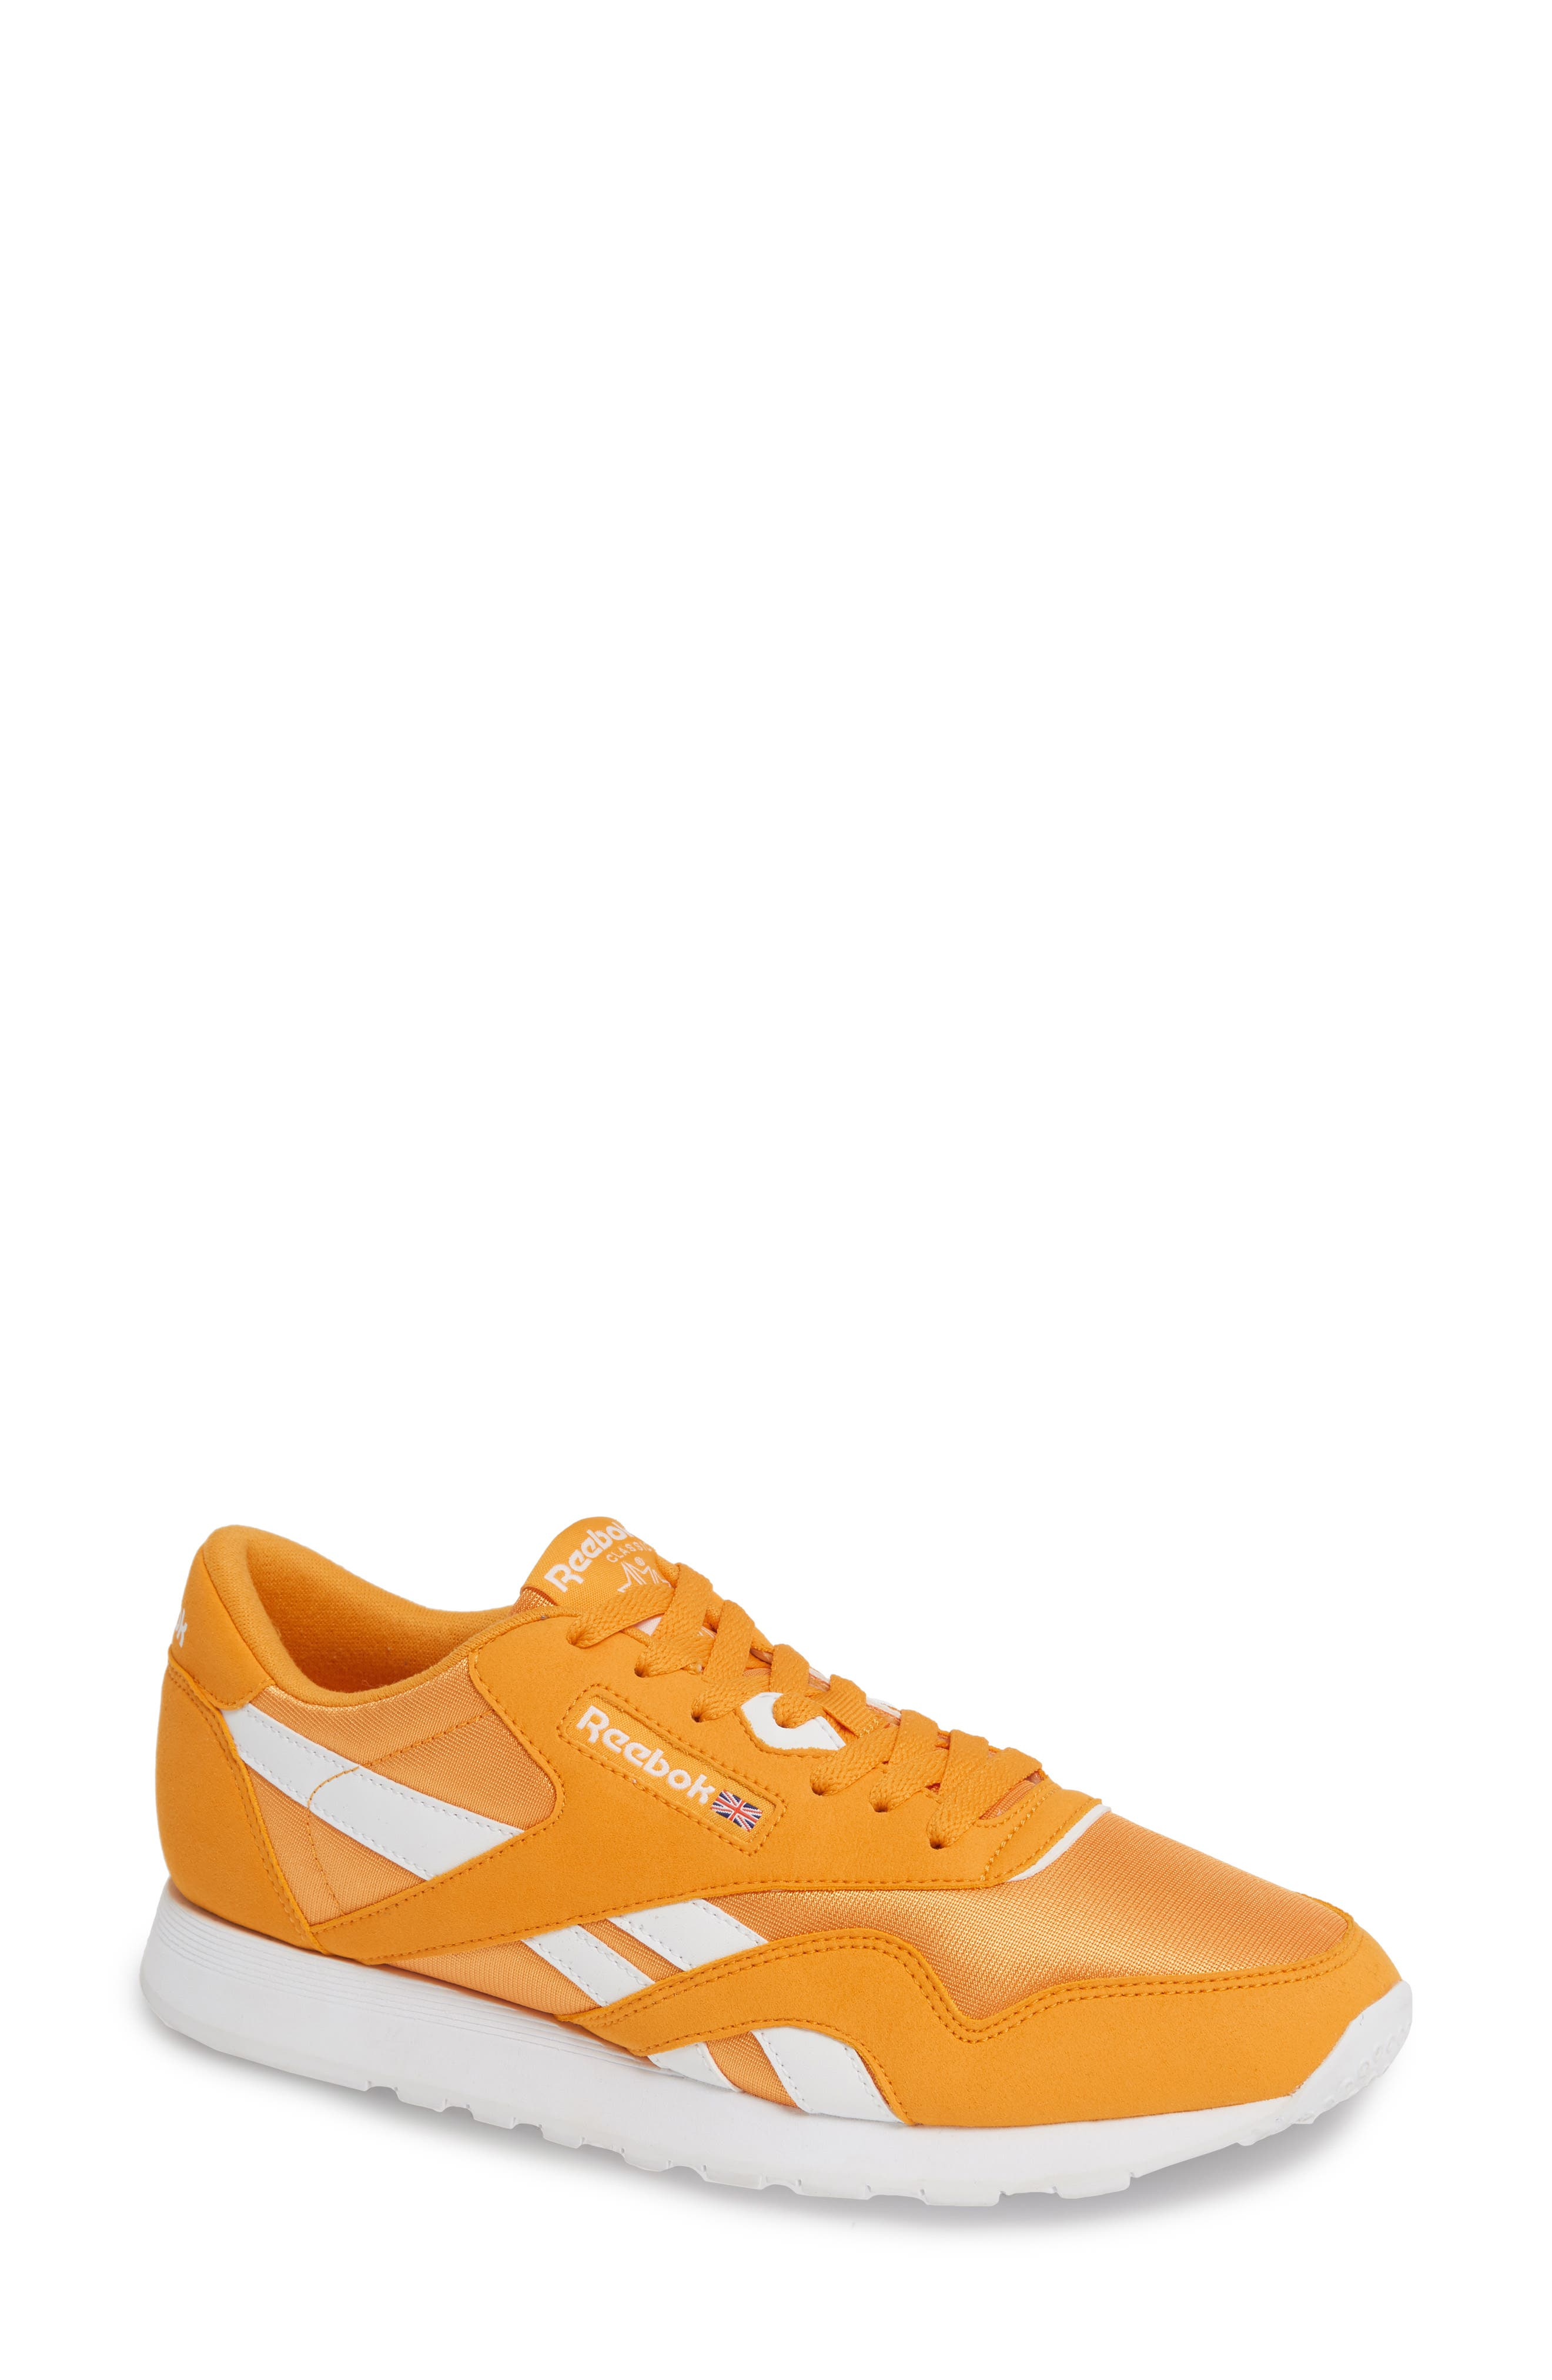 REEBOK Classic Nylon Sneaker, Main, color, TREK GOLD/ WHITE